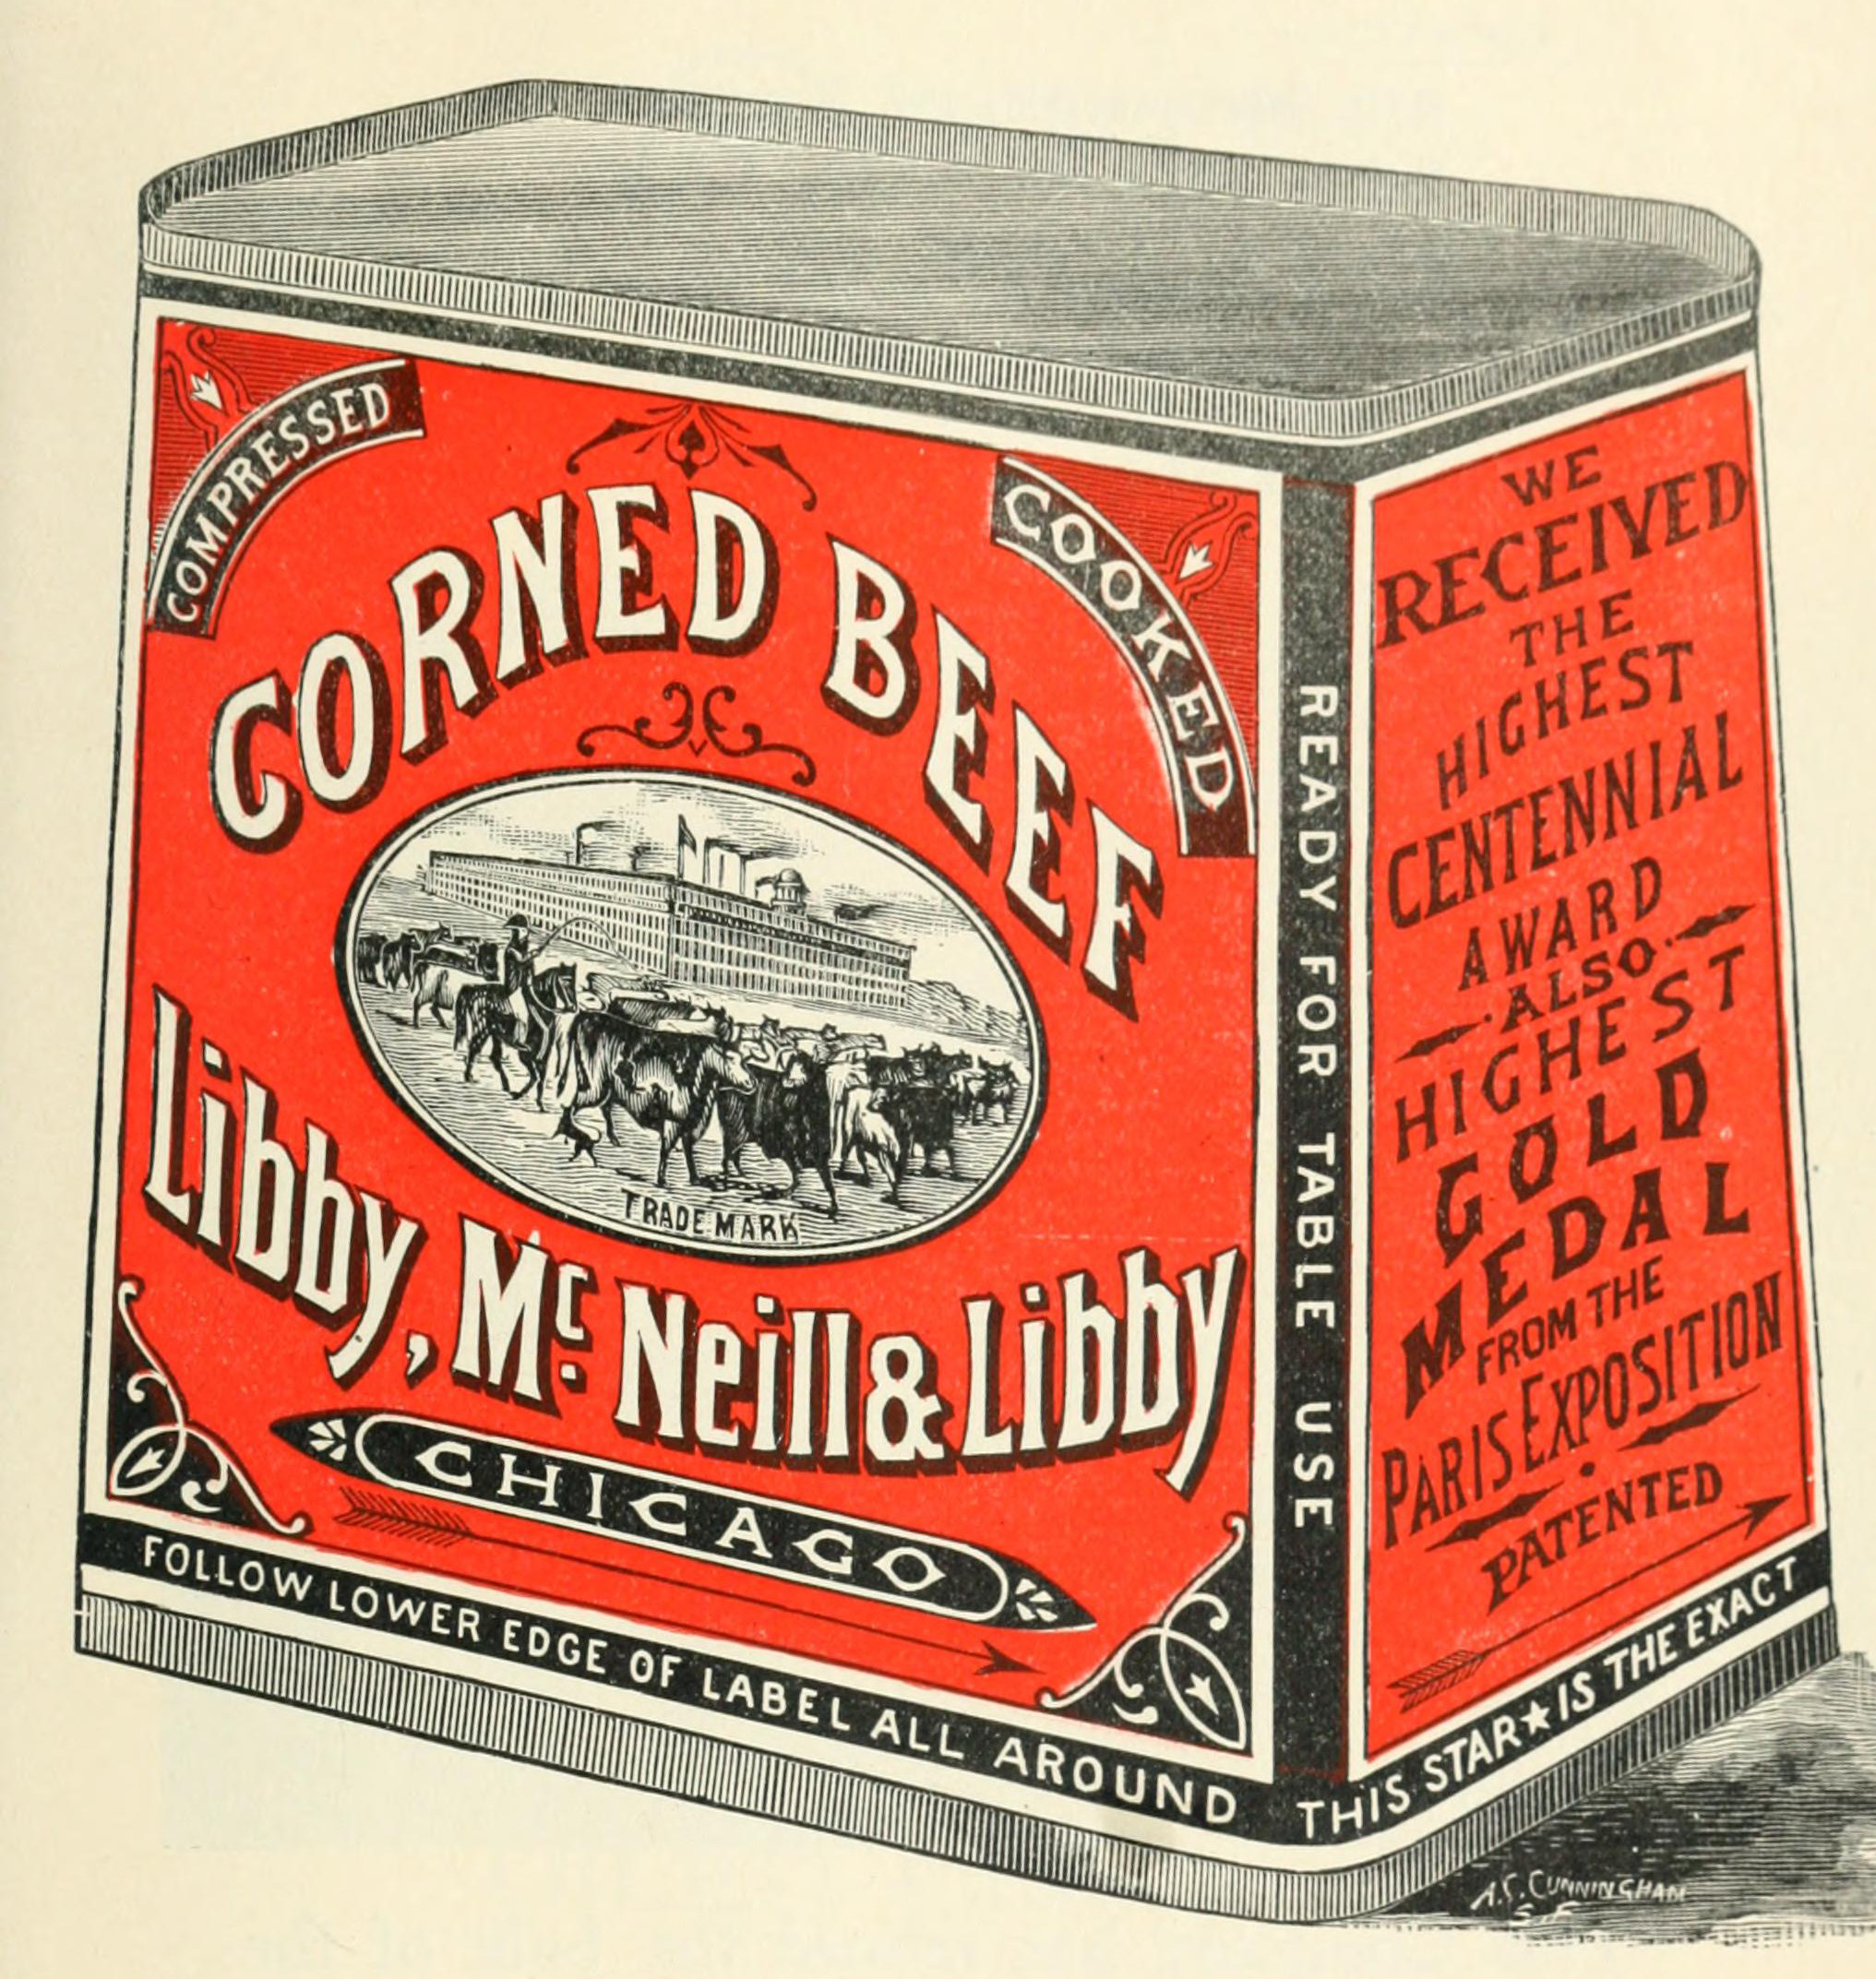 [Image: Libby_McNeill_%26_Libby_Corned_Beef_1898.jpg]